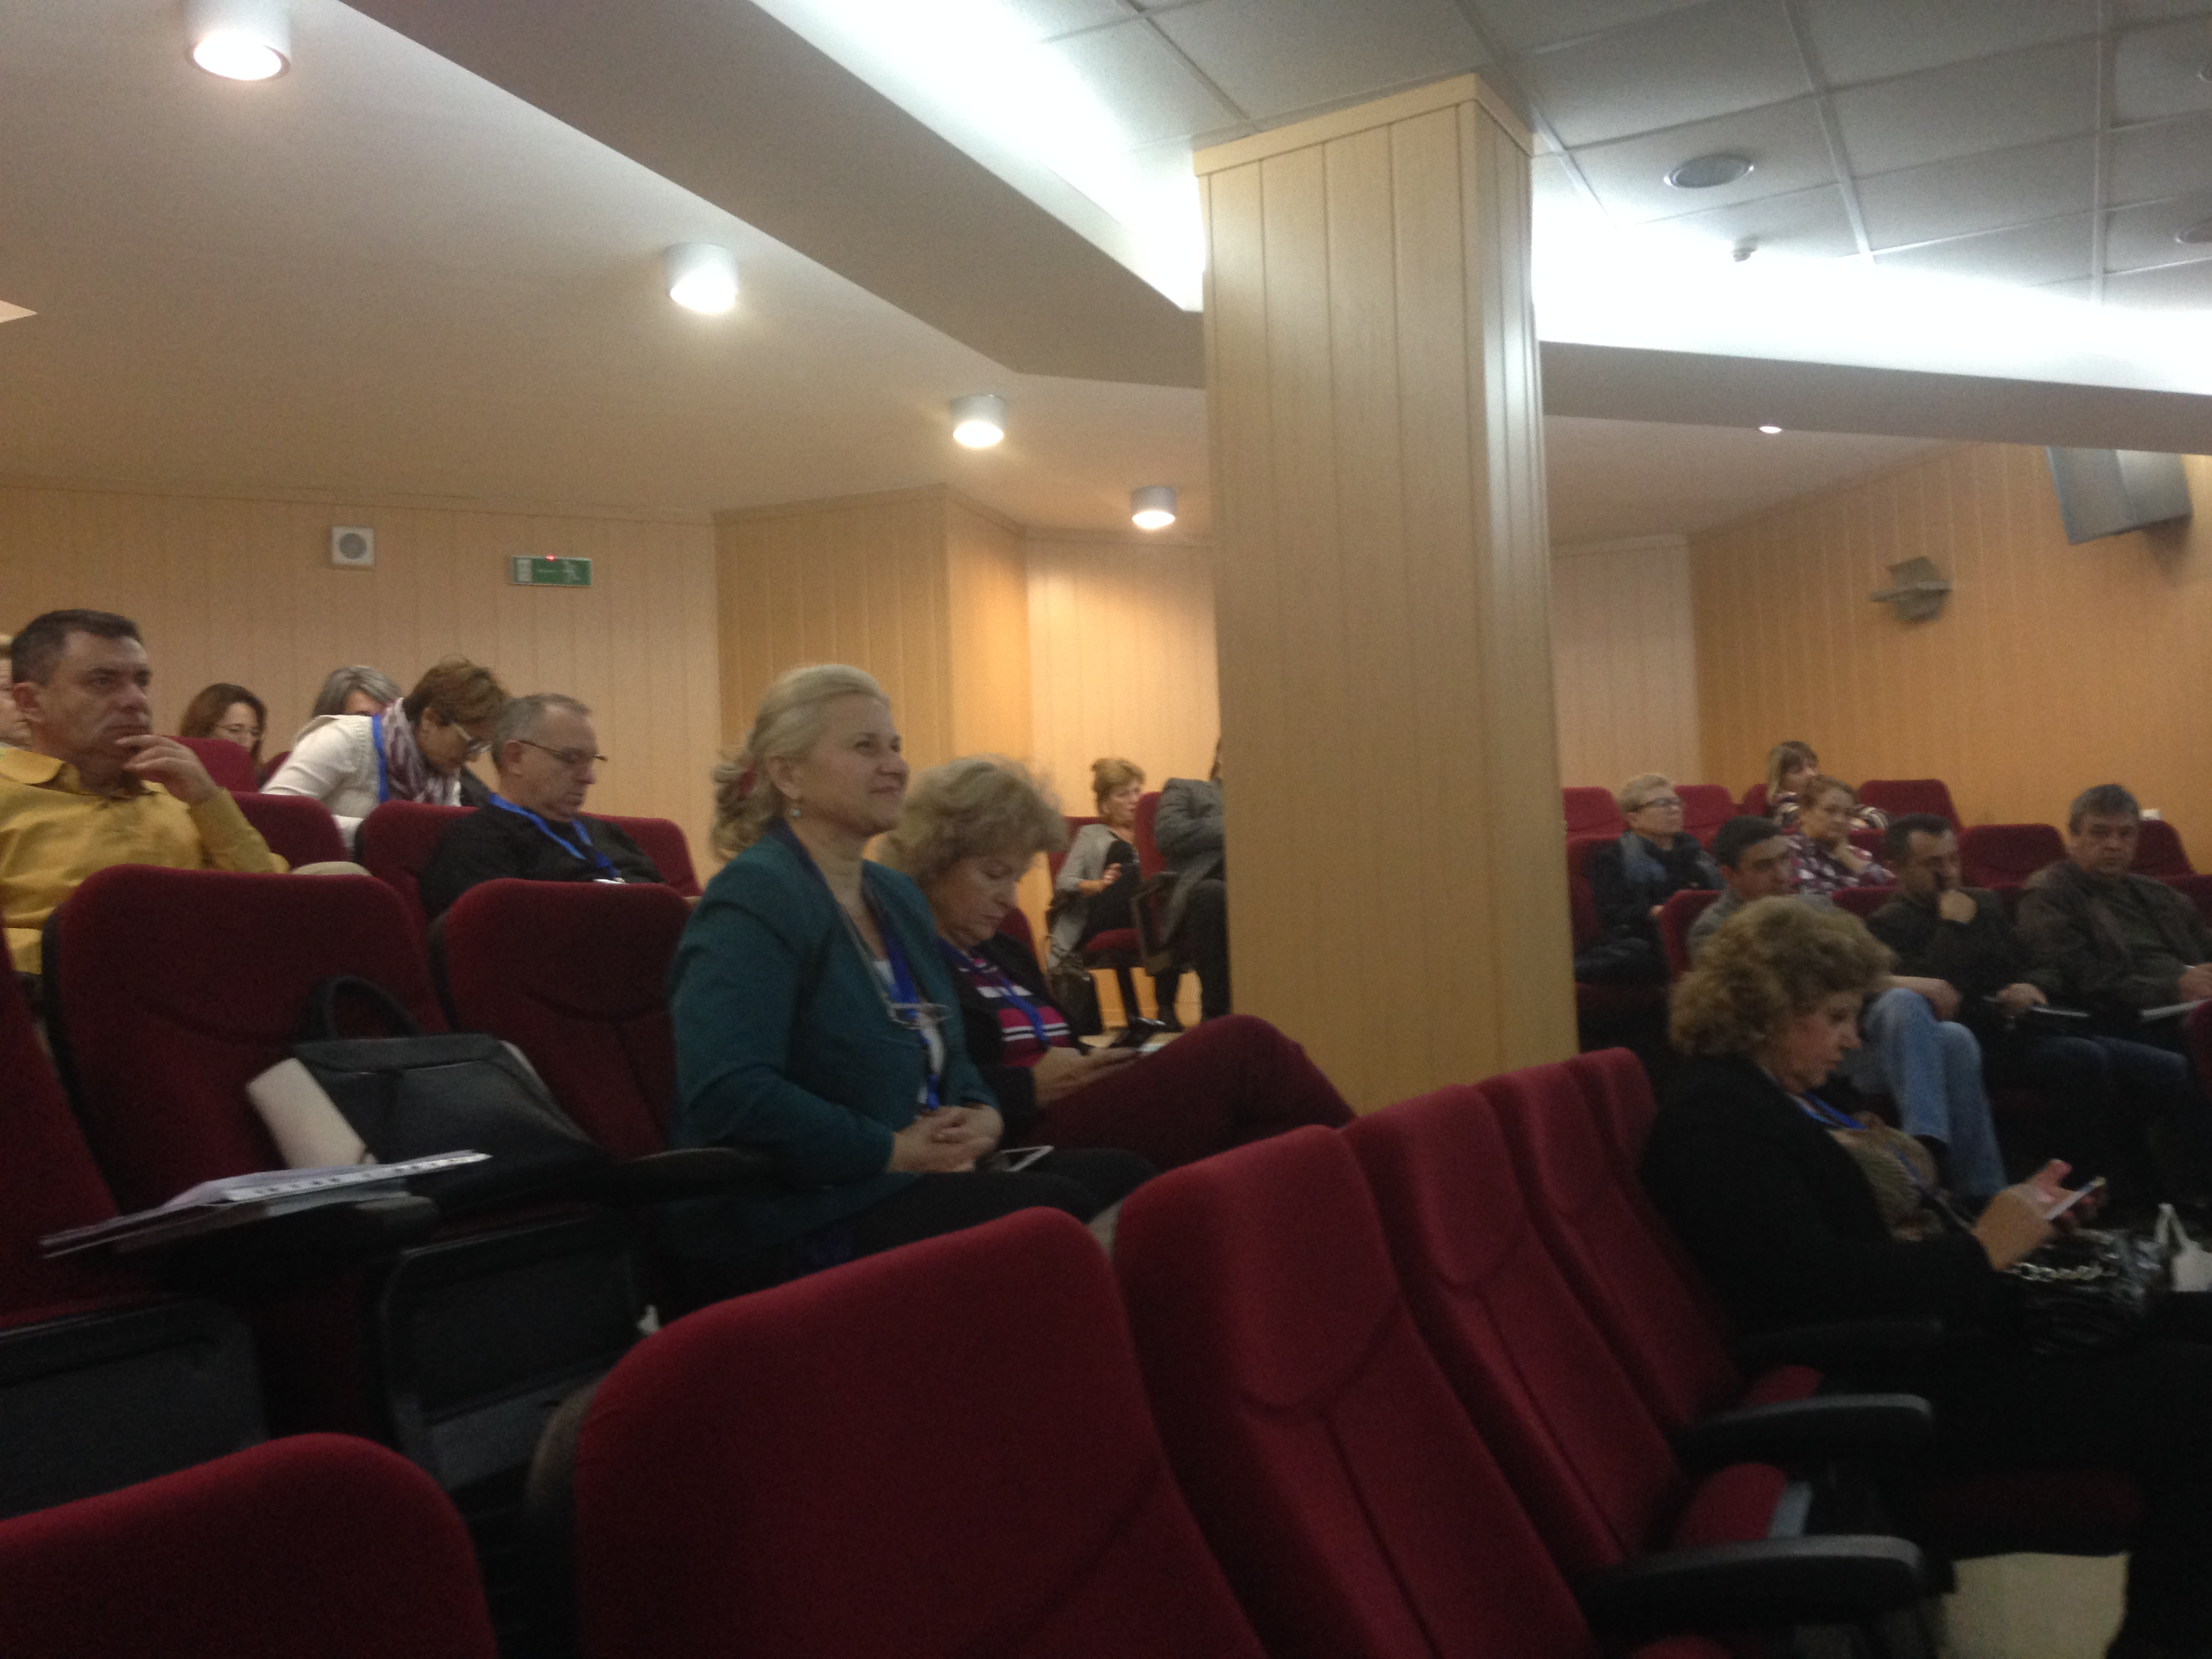 International Conference on Zoology and Zoonoses,  October 26-28, 2016, Hissar, Bulgaria